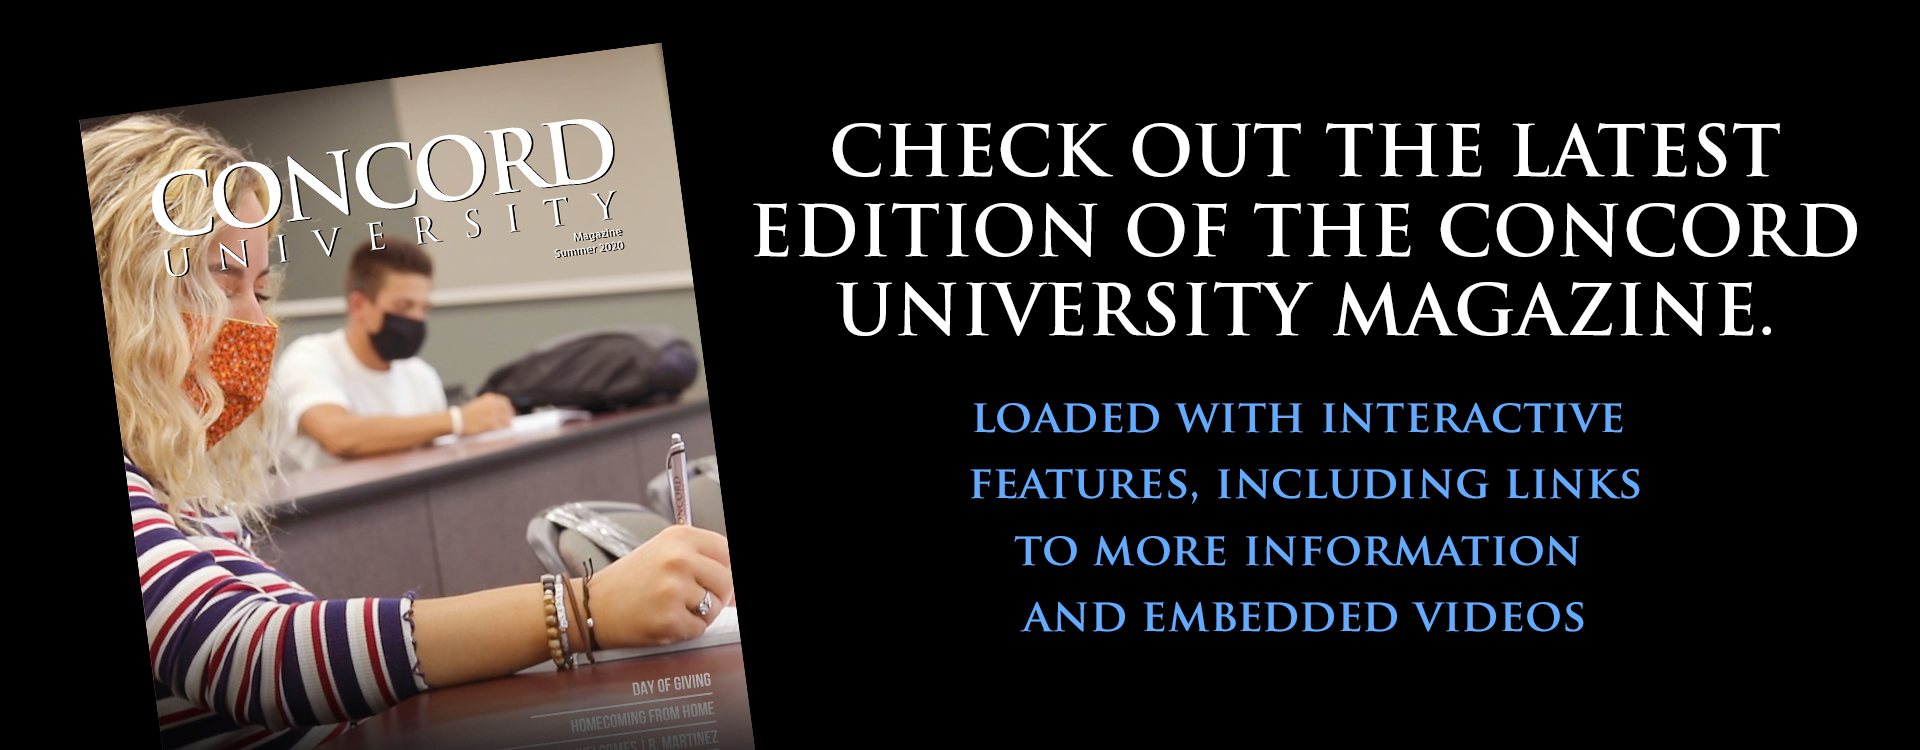 Check out the latest edition of Concord University Magazine.